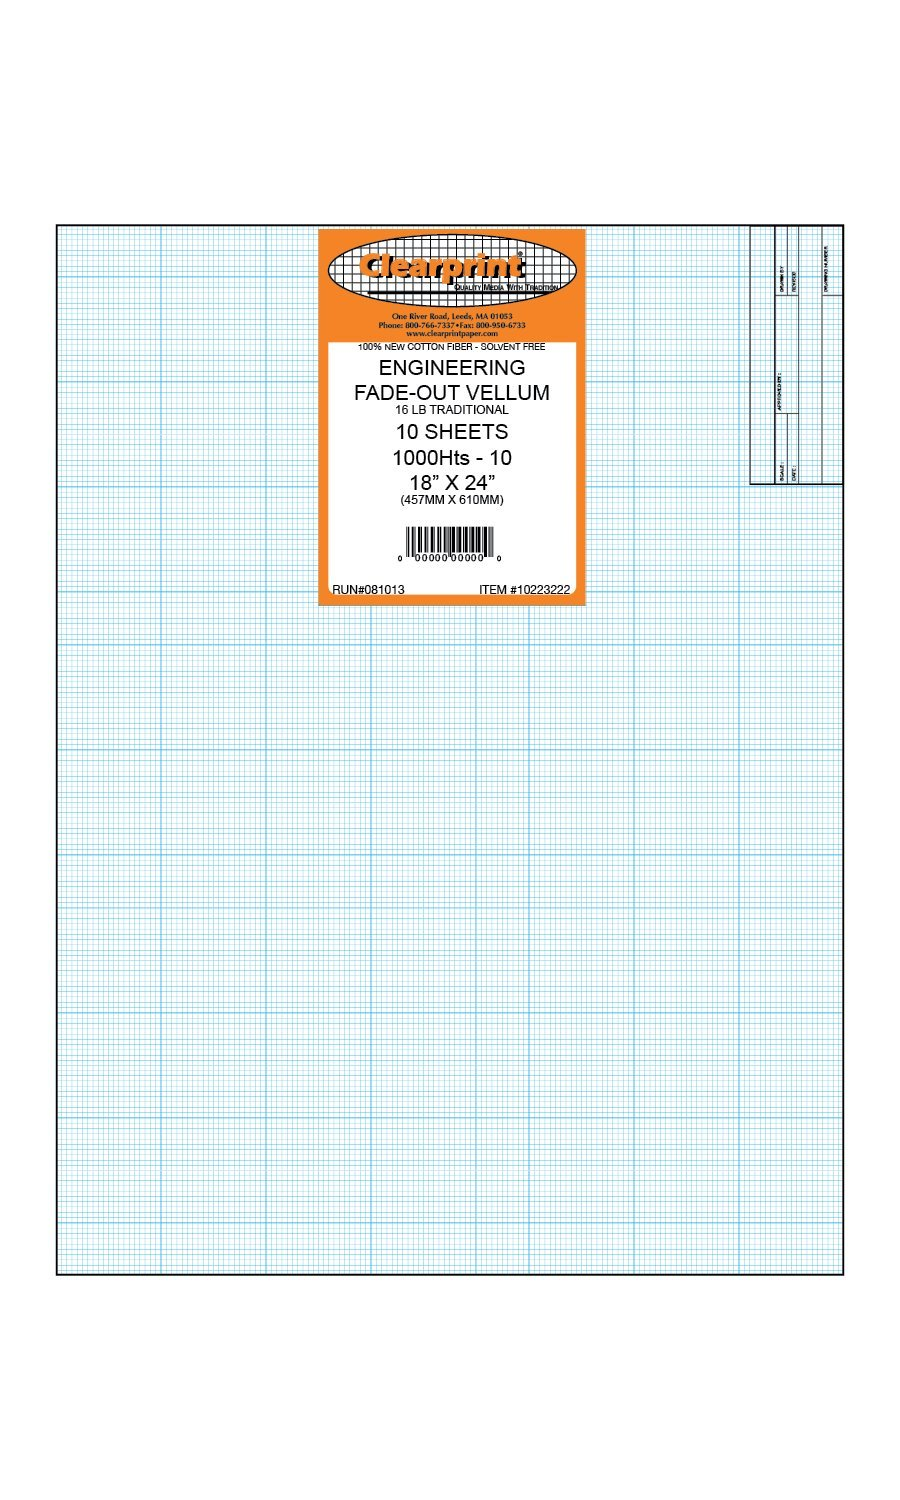 Clearprint 1000H Design Vellum Sheets with Architect Title Block and Printed Fade-Out 10x10 Grid, 100% Cotton, 18 x 24 Inches, 10 Sheets (10223222) by Clearprint